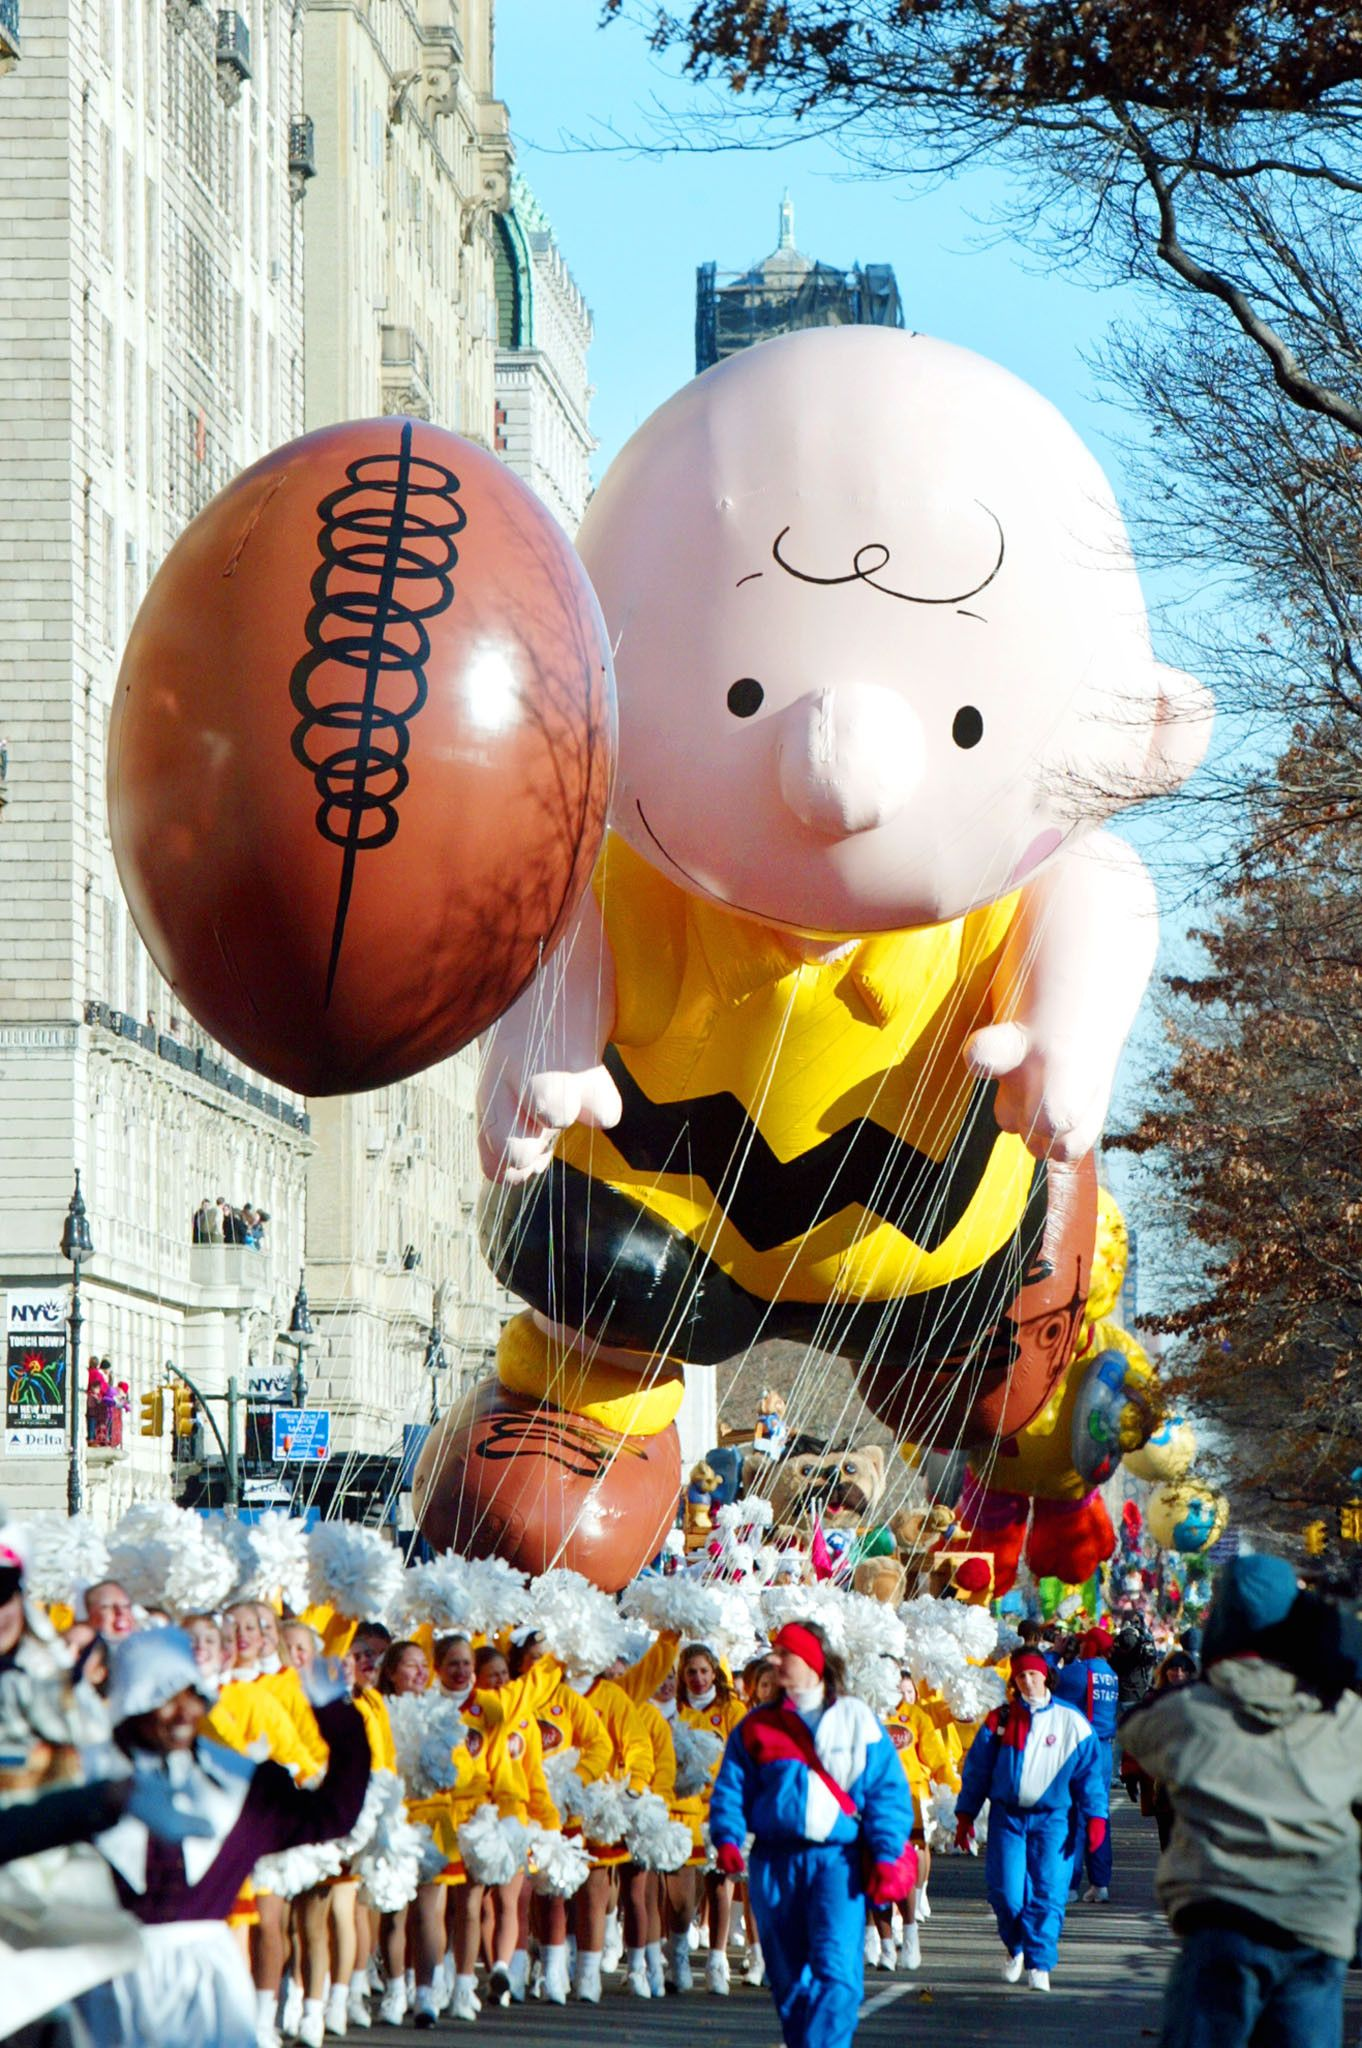 Pikachu Balloon Floats In Macys Thanksgiving Day Parade Thanksgiving Pictures His Thanksgiving History Macy S Thanksgiving Day Parade Thanksgiving Pictures